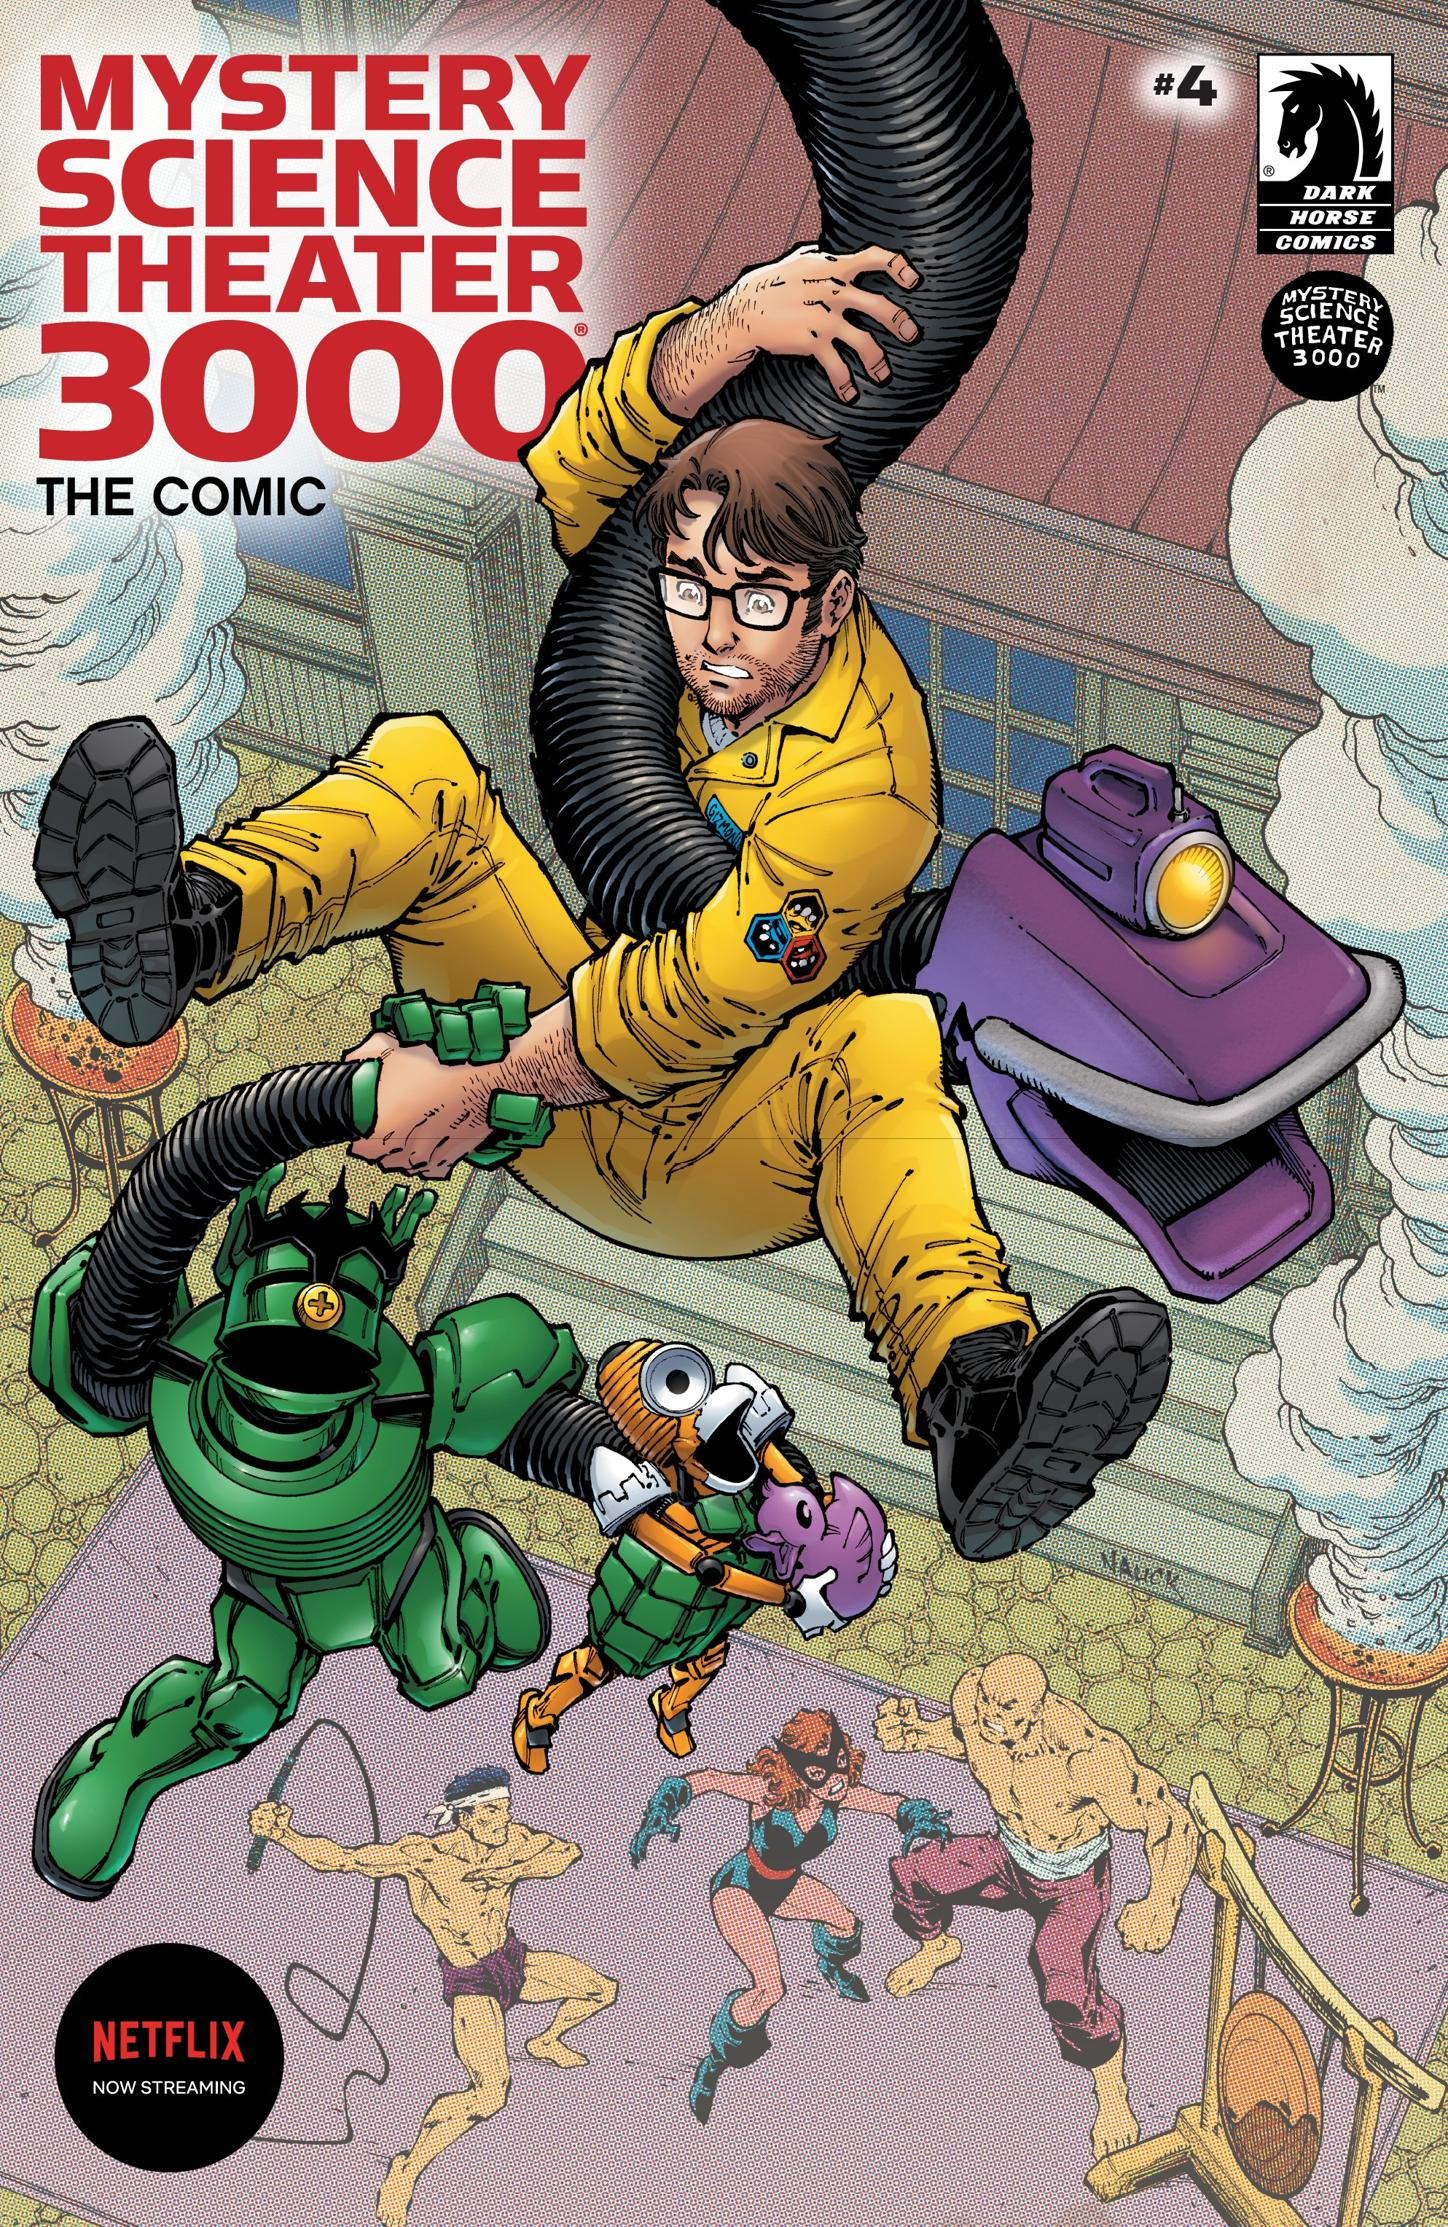 Mystery Science Theater 3000-The Comic 004 2019 digital Son of Ultron